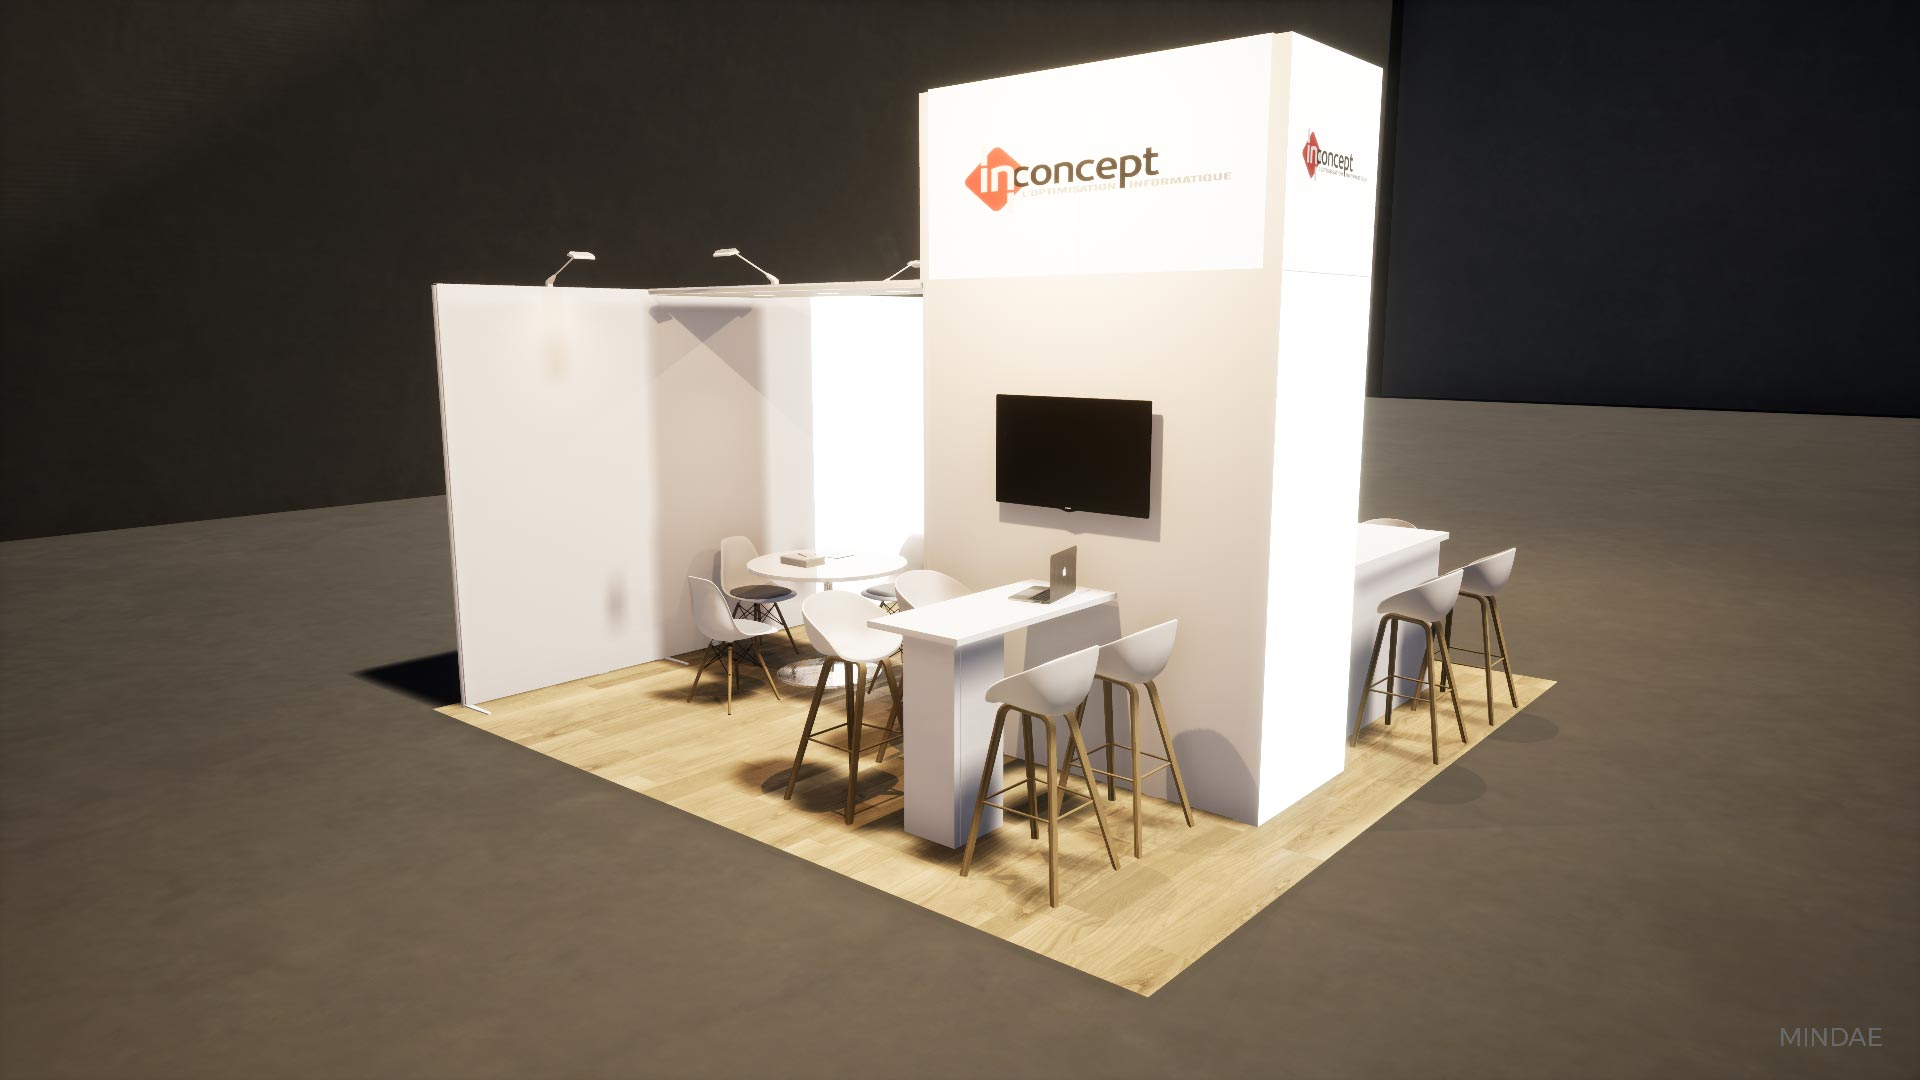 Mindae_3D_magik_expo_stand_in_concept_immobilier_evenementiel-(3)